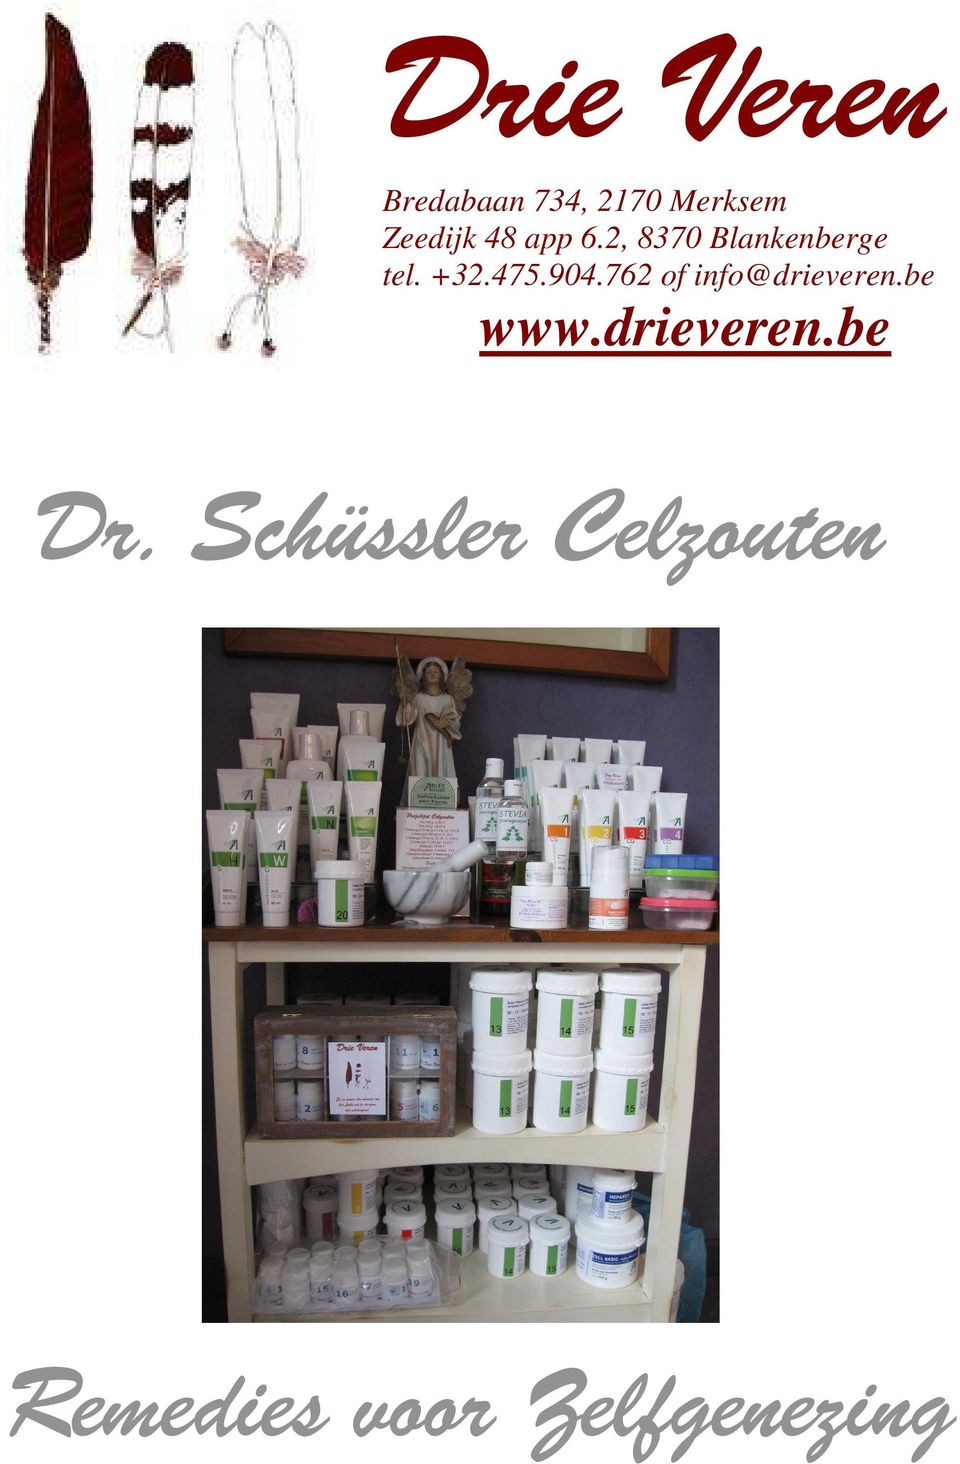 762 of info@drieveren.be www.drieveren.be Dr.